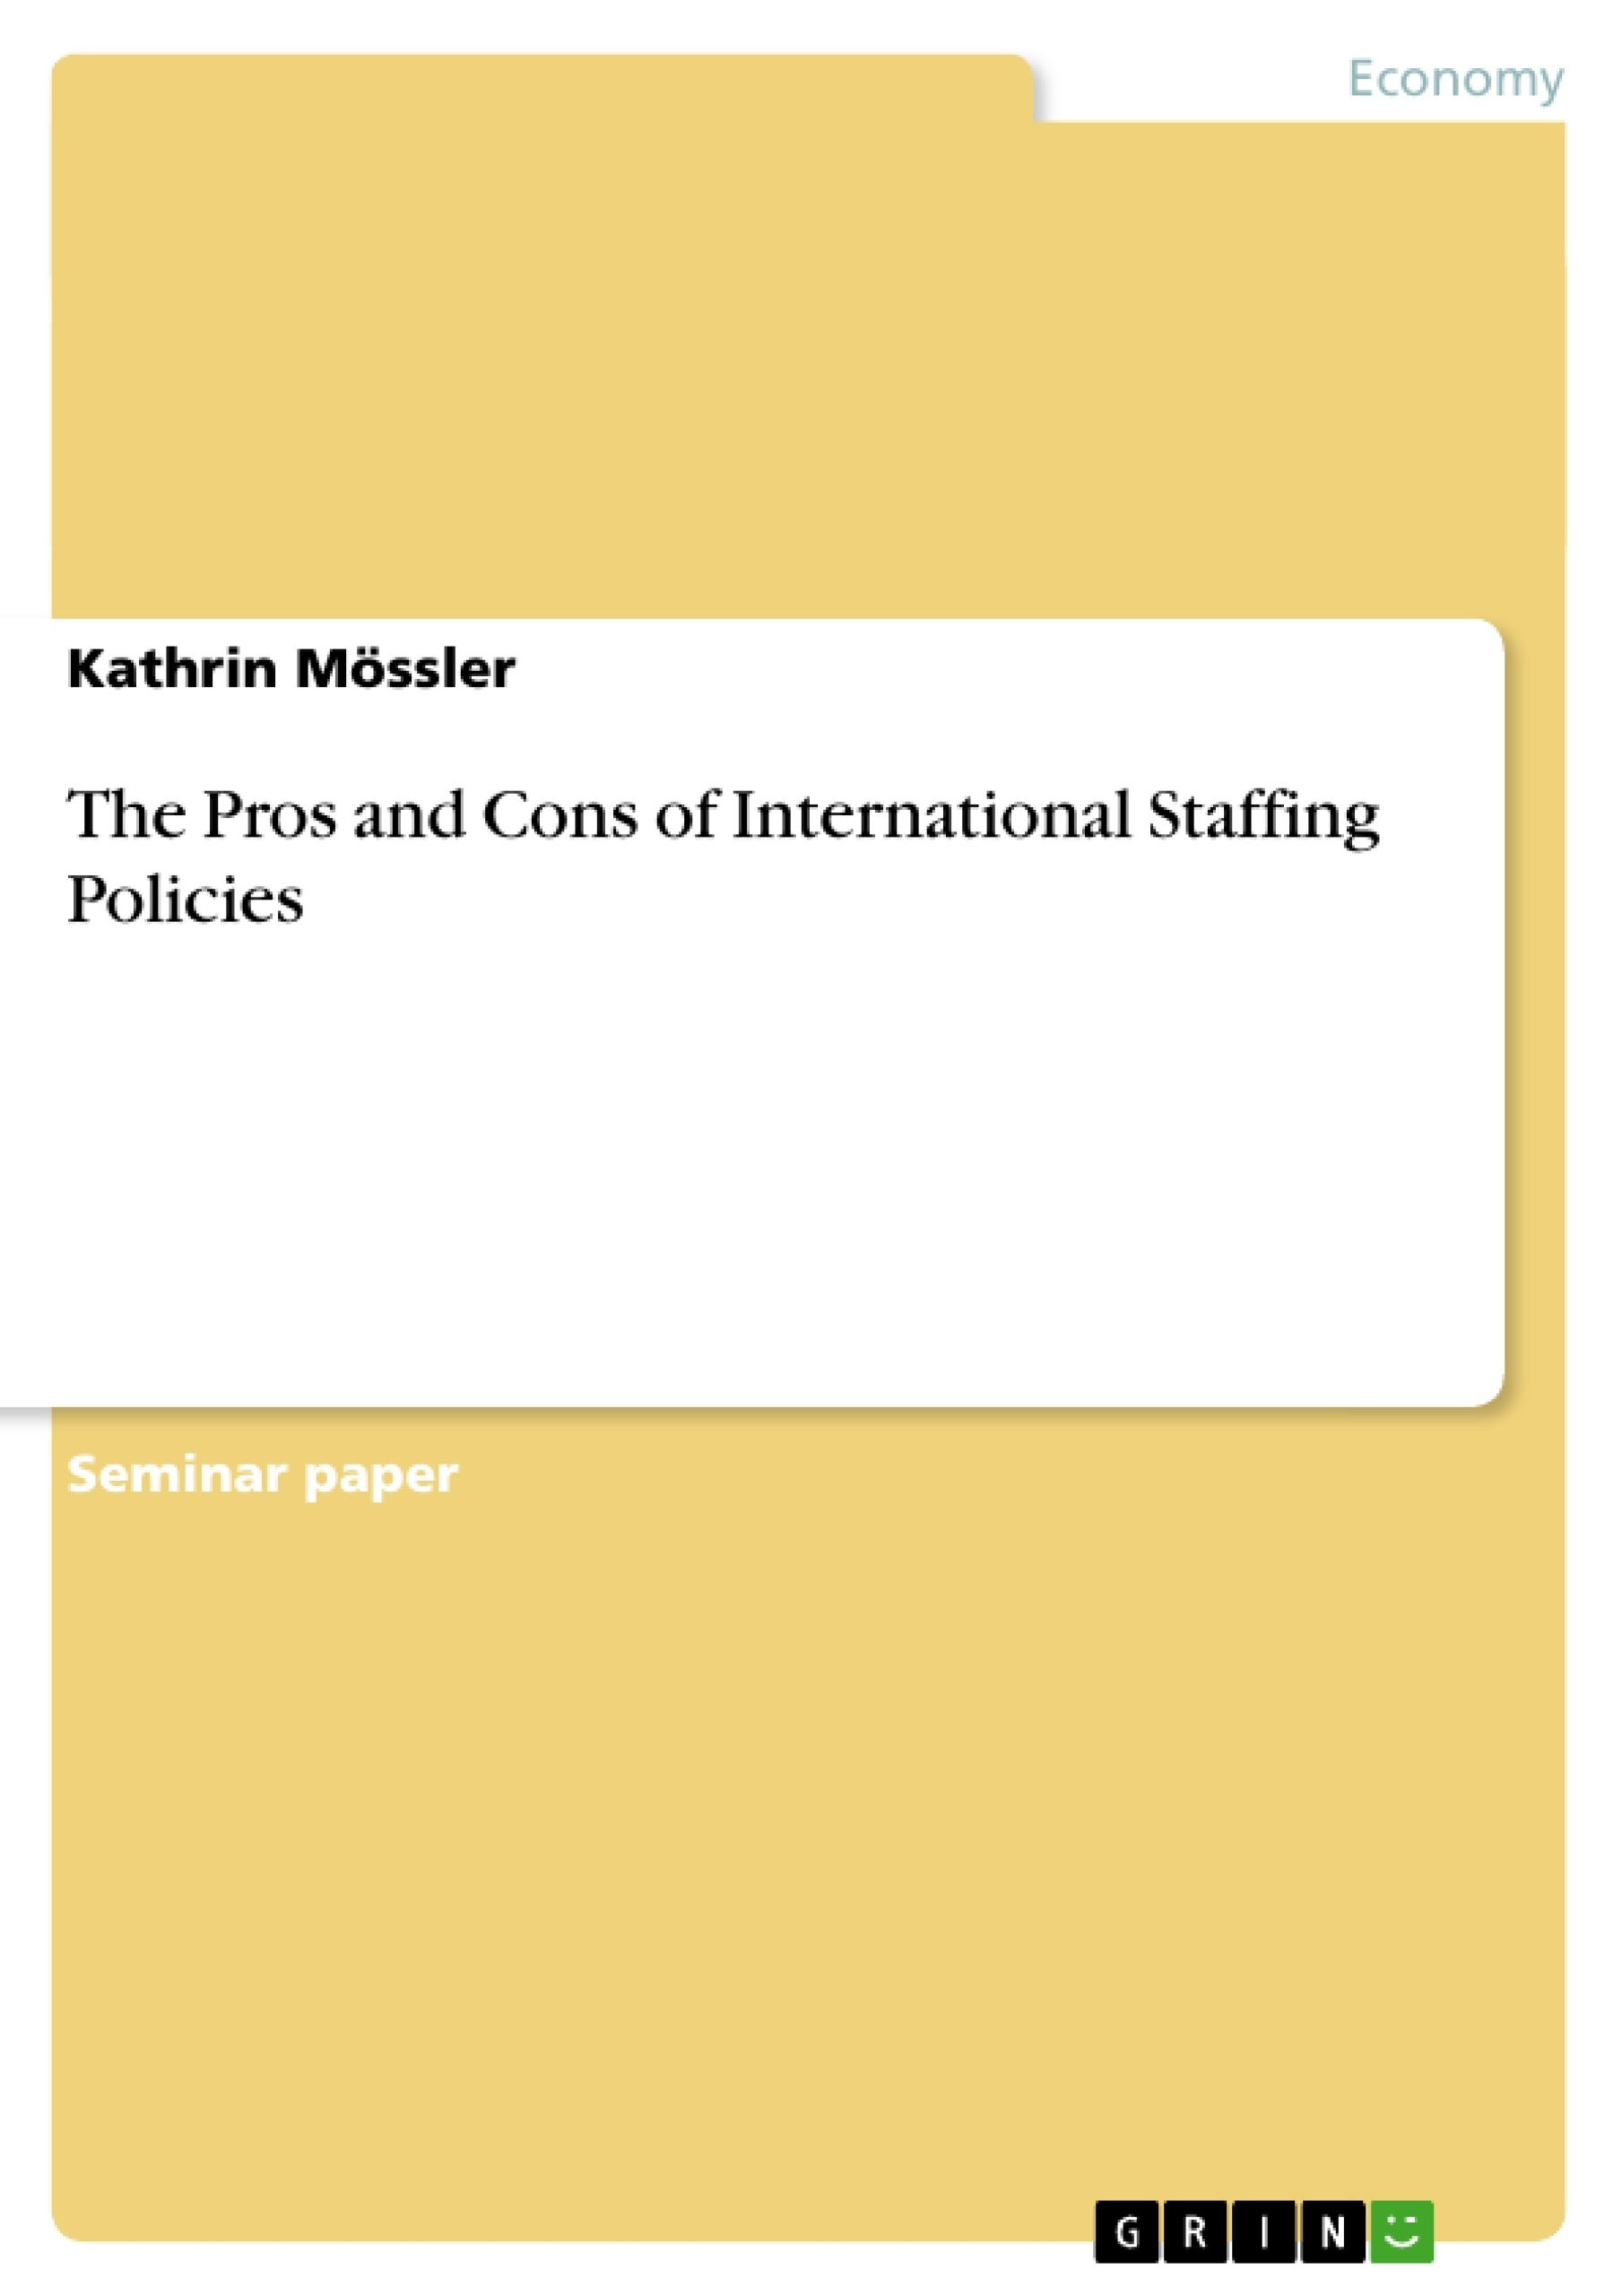 the pros and cons of international staffing policies publish upload your own papers earn money and win an iphone 7